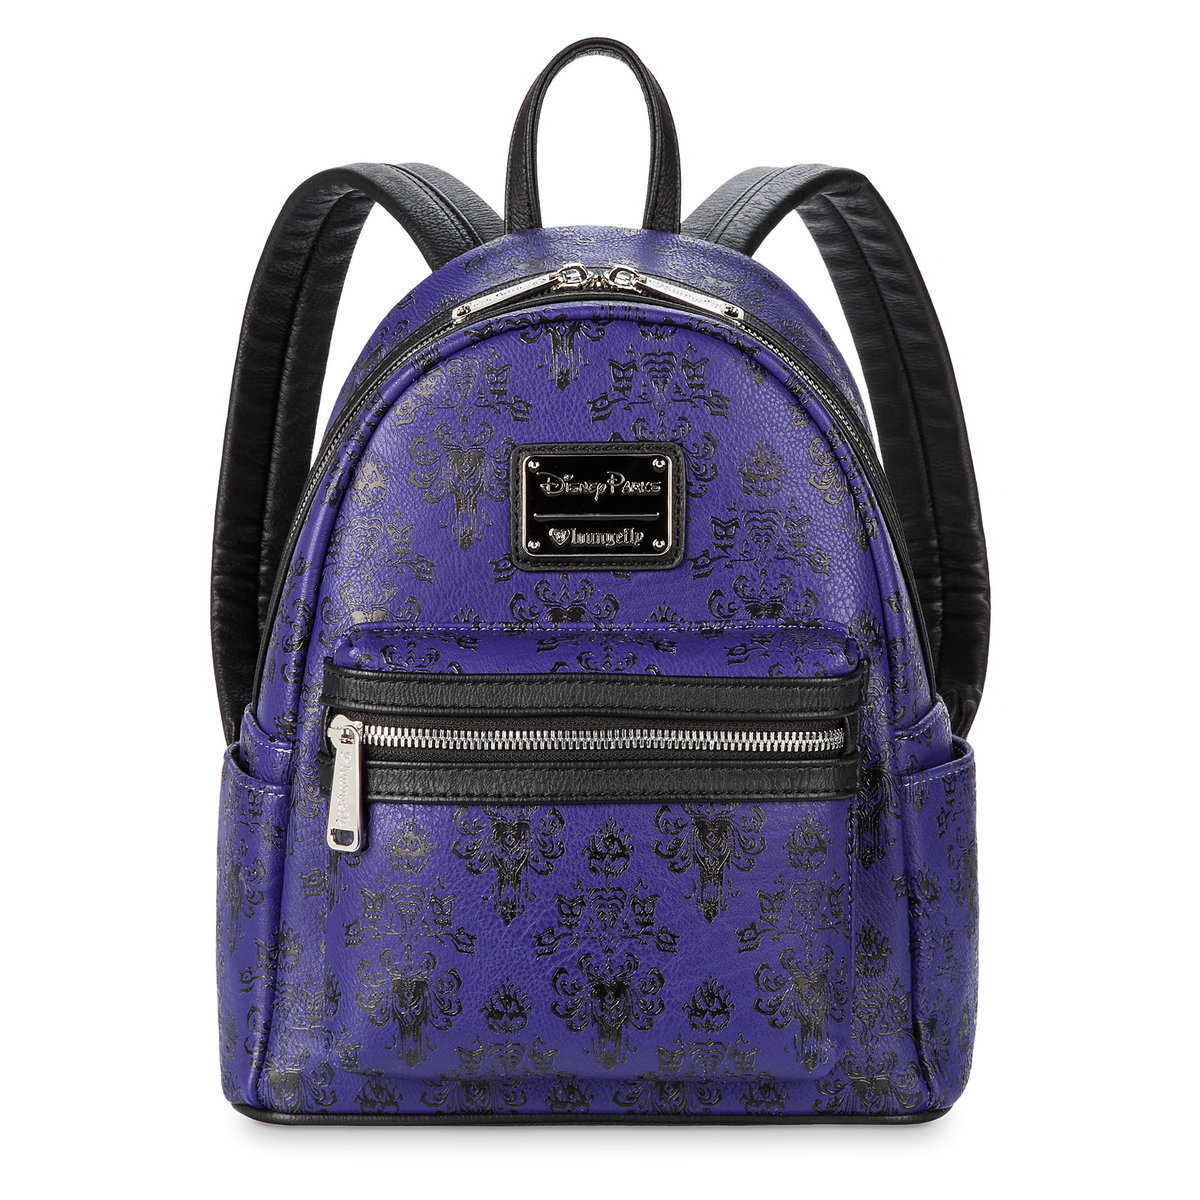 0972239ed9c Product Image of Haunted Mansion Wallpaper Mini Backpack by Loungefly   1